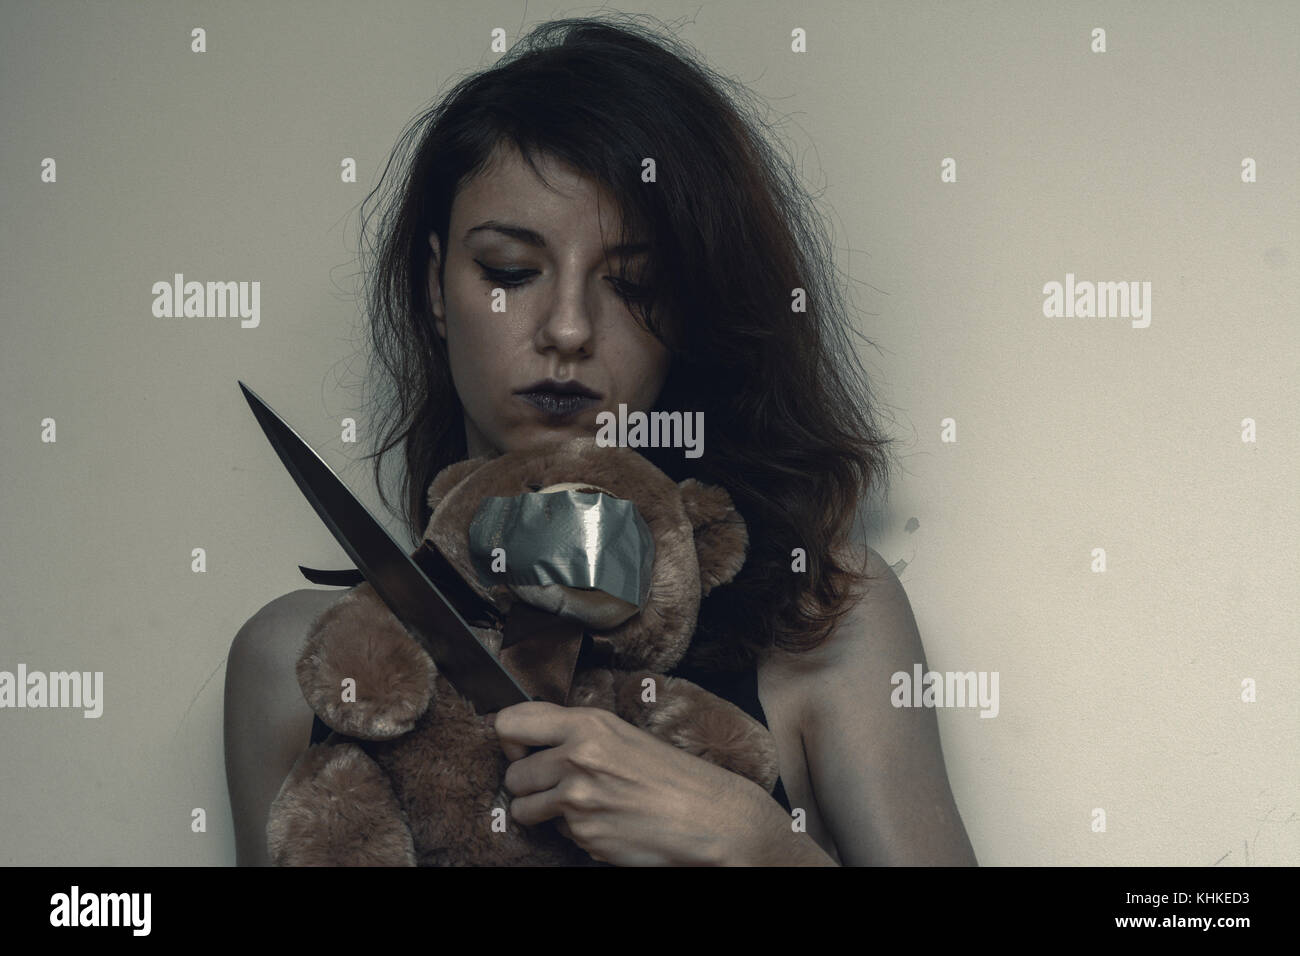 A demon female trying to kidnap and kill a teddybear - Stock Image